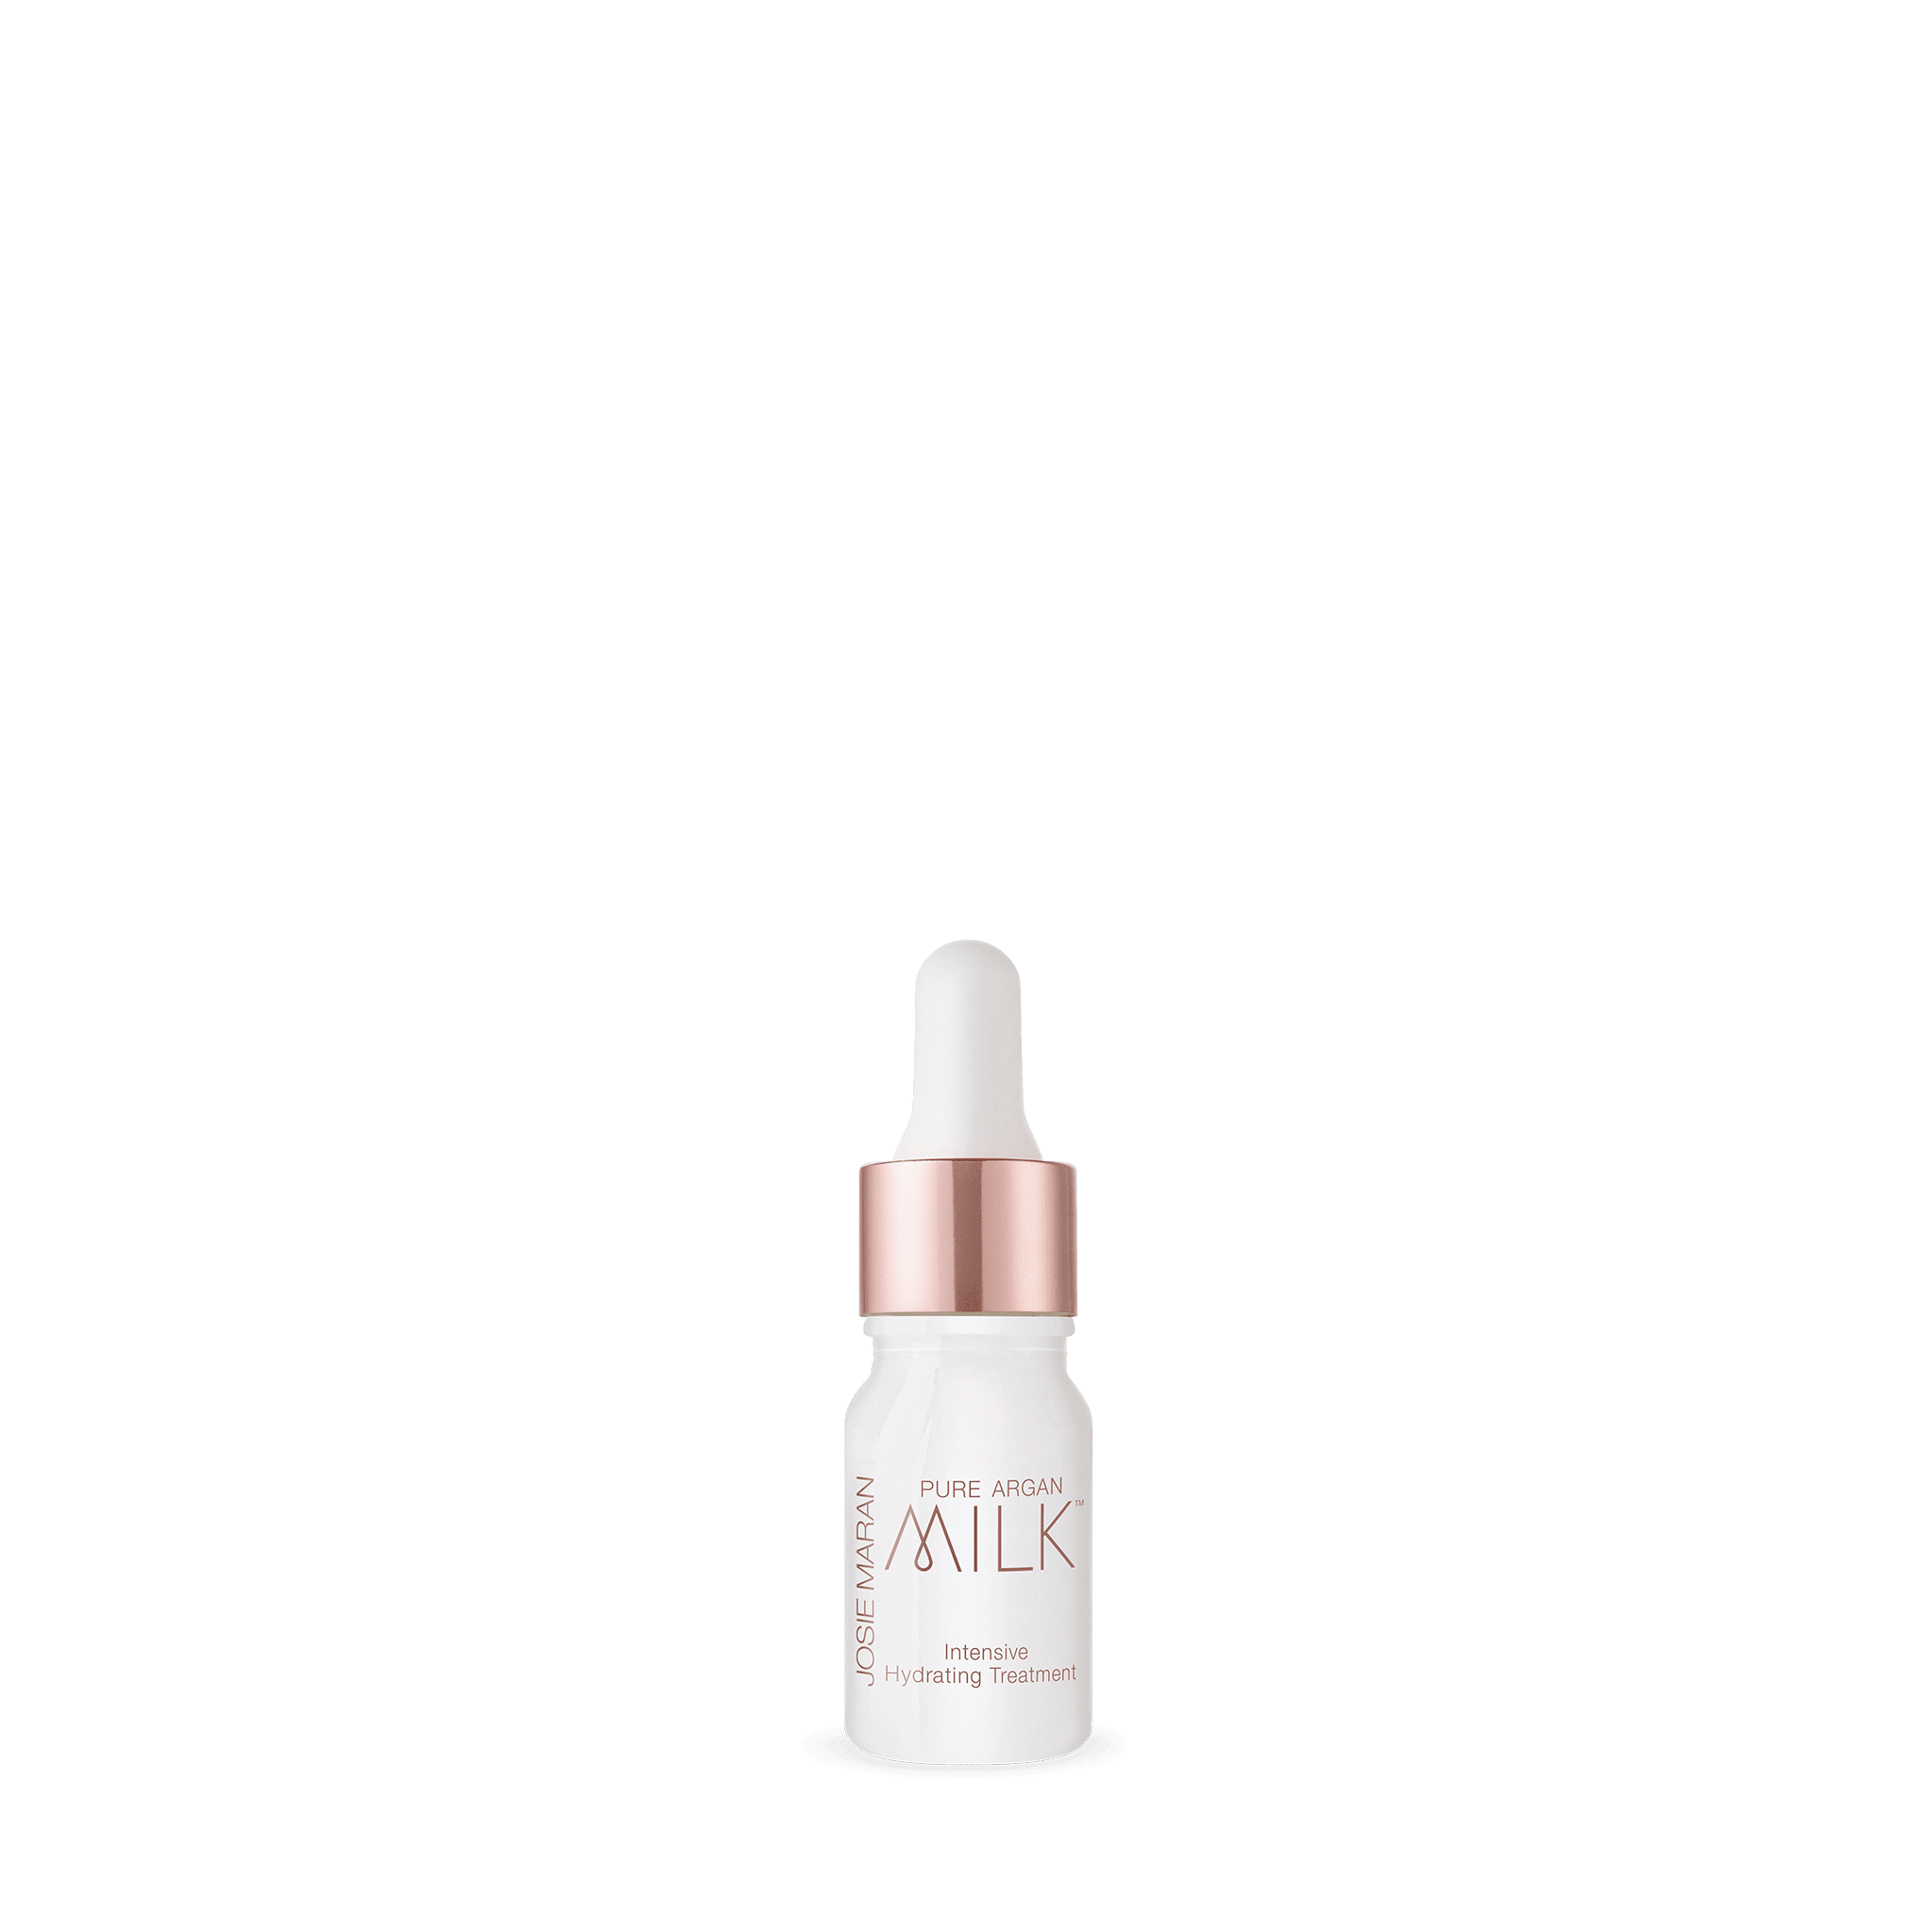 Milk drip png. Pure argan intensive hydrating